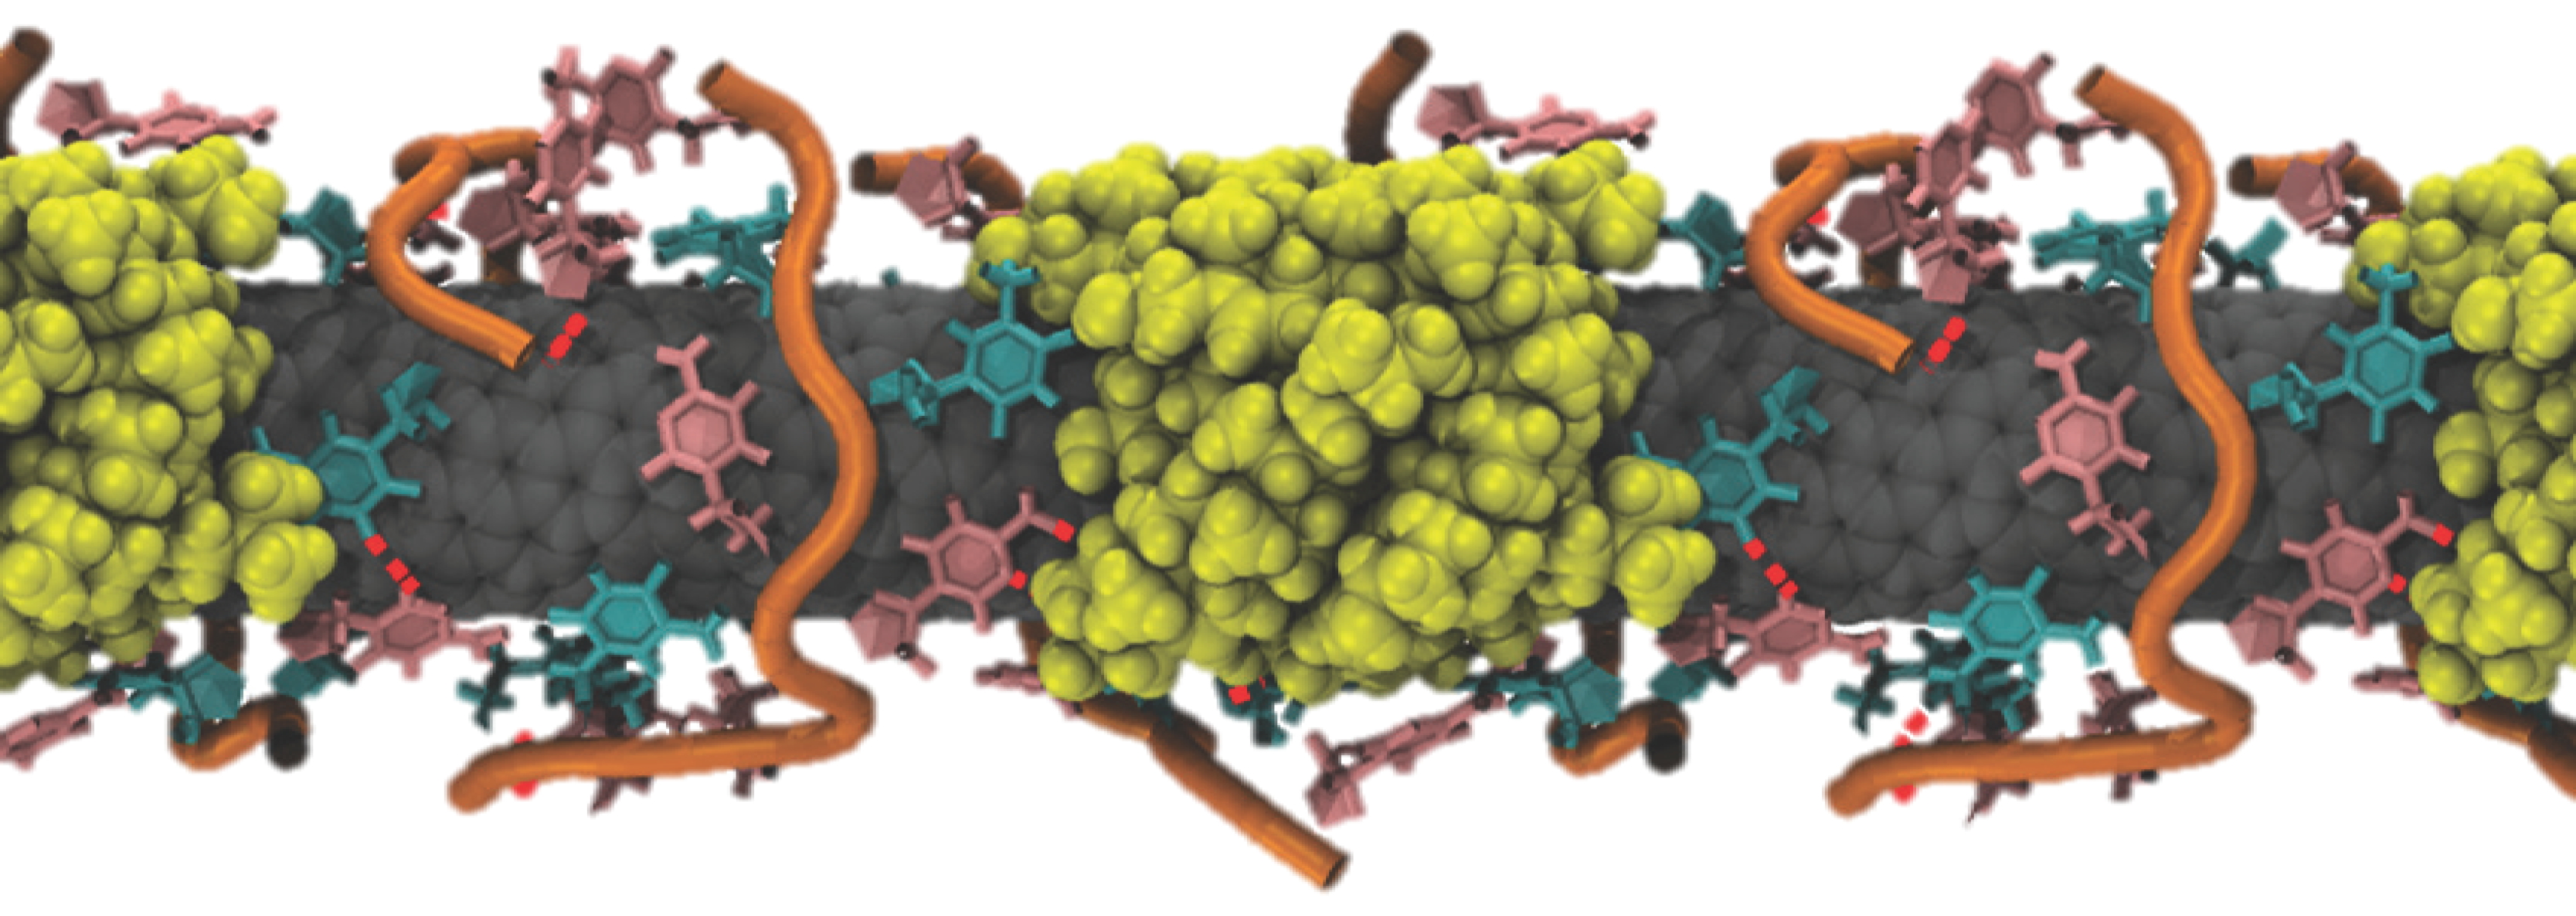 Simulated image of the nanoreporter bound to molecules of cholesterol (yellow).